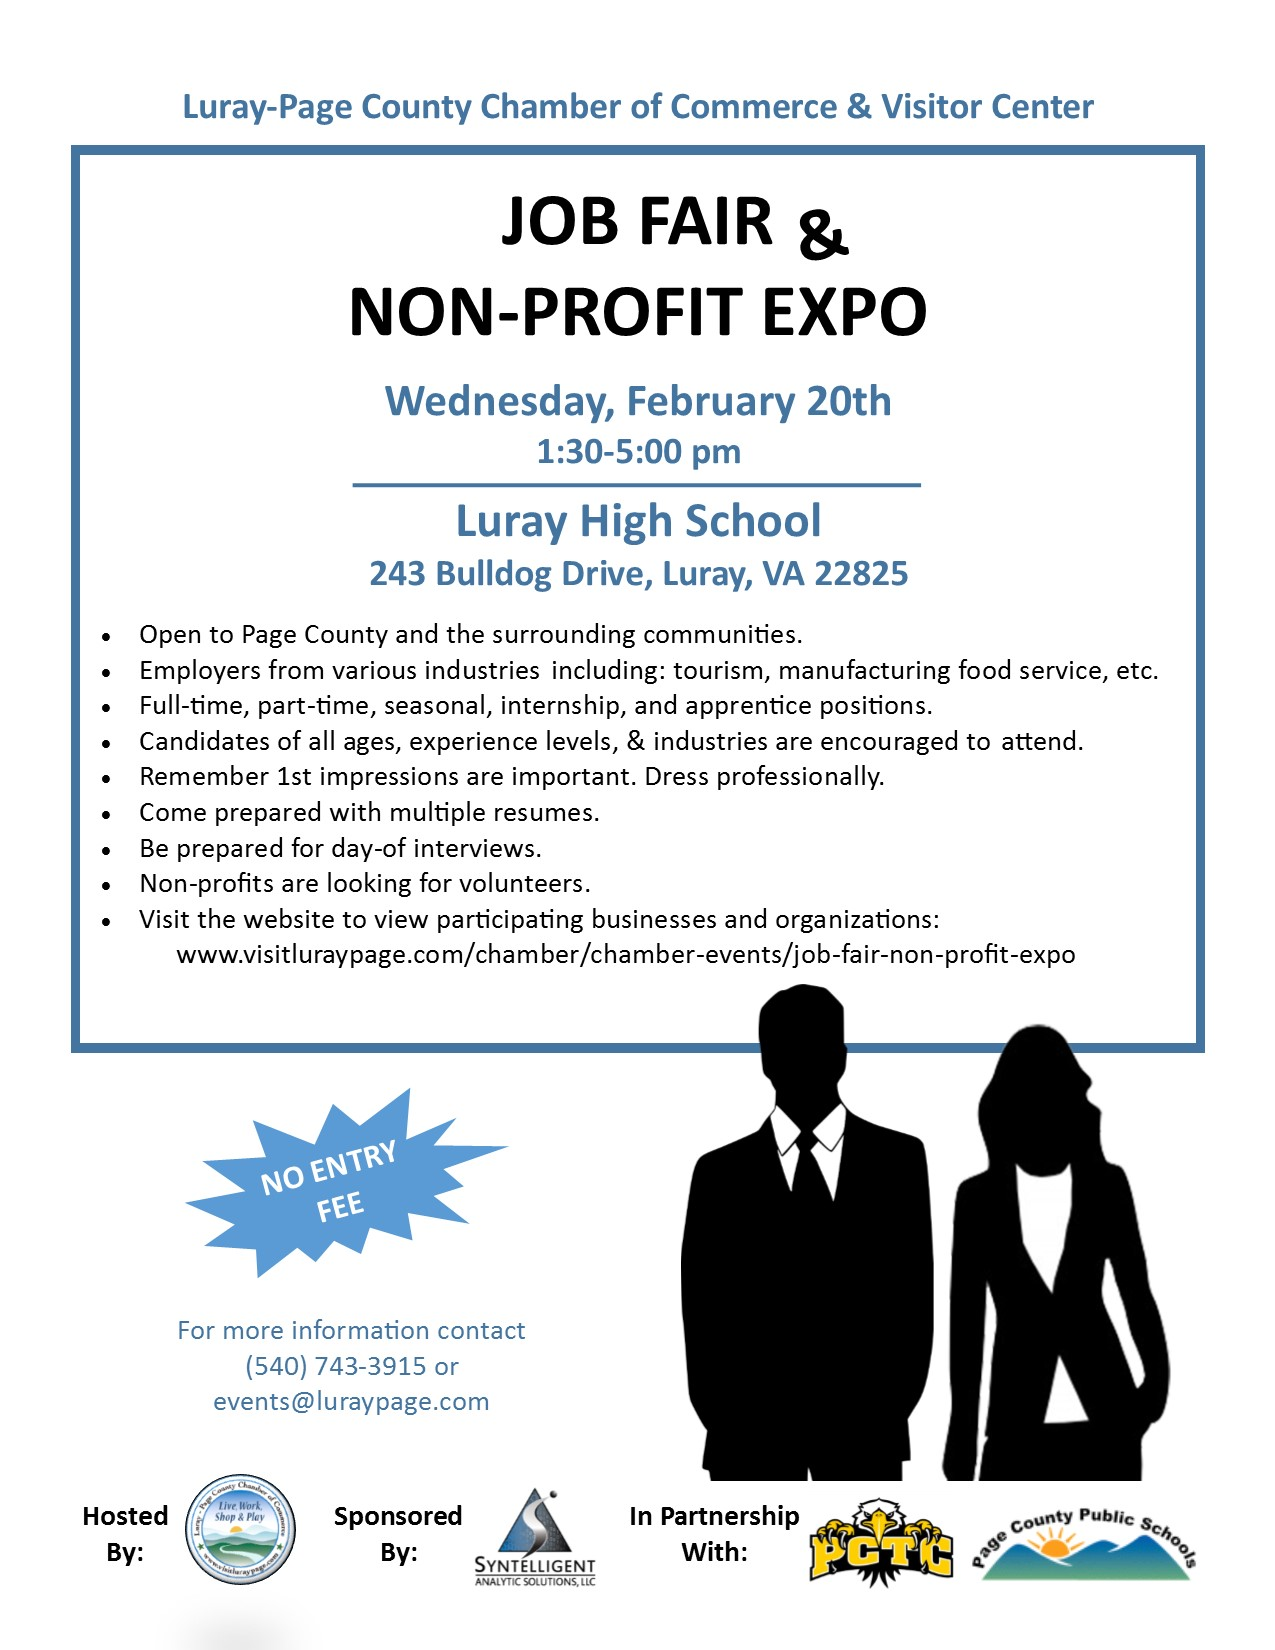 Chamber Job Fair & Non-Profit Expo | Luray-Page Chamber of